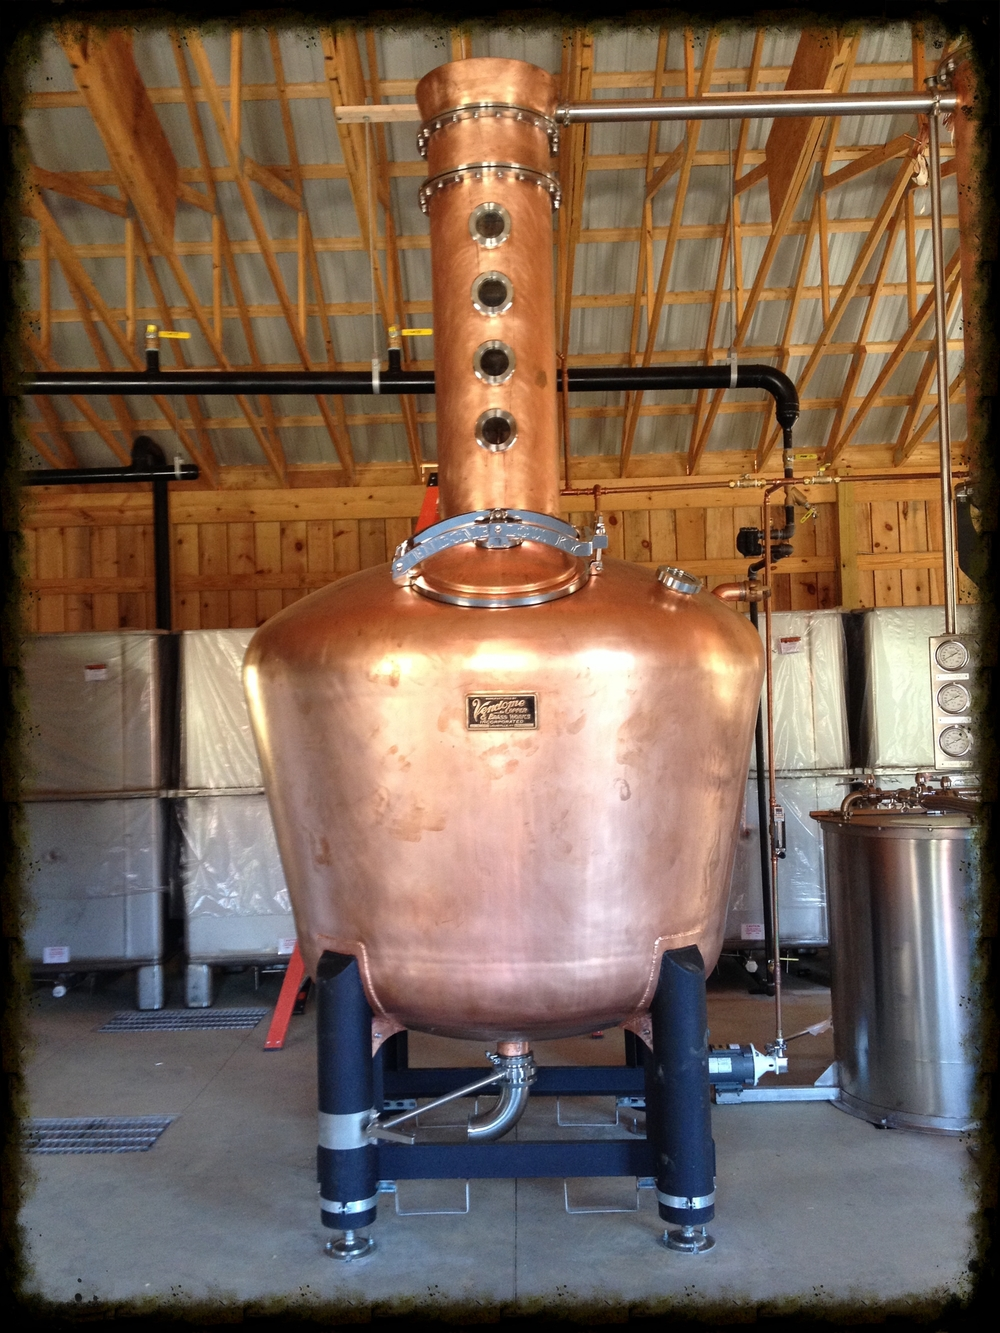 Ragged Mountain Farm Distillery